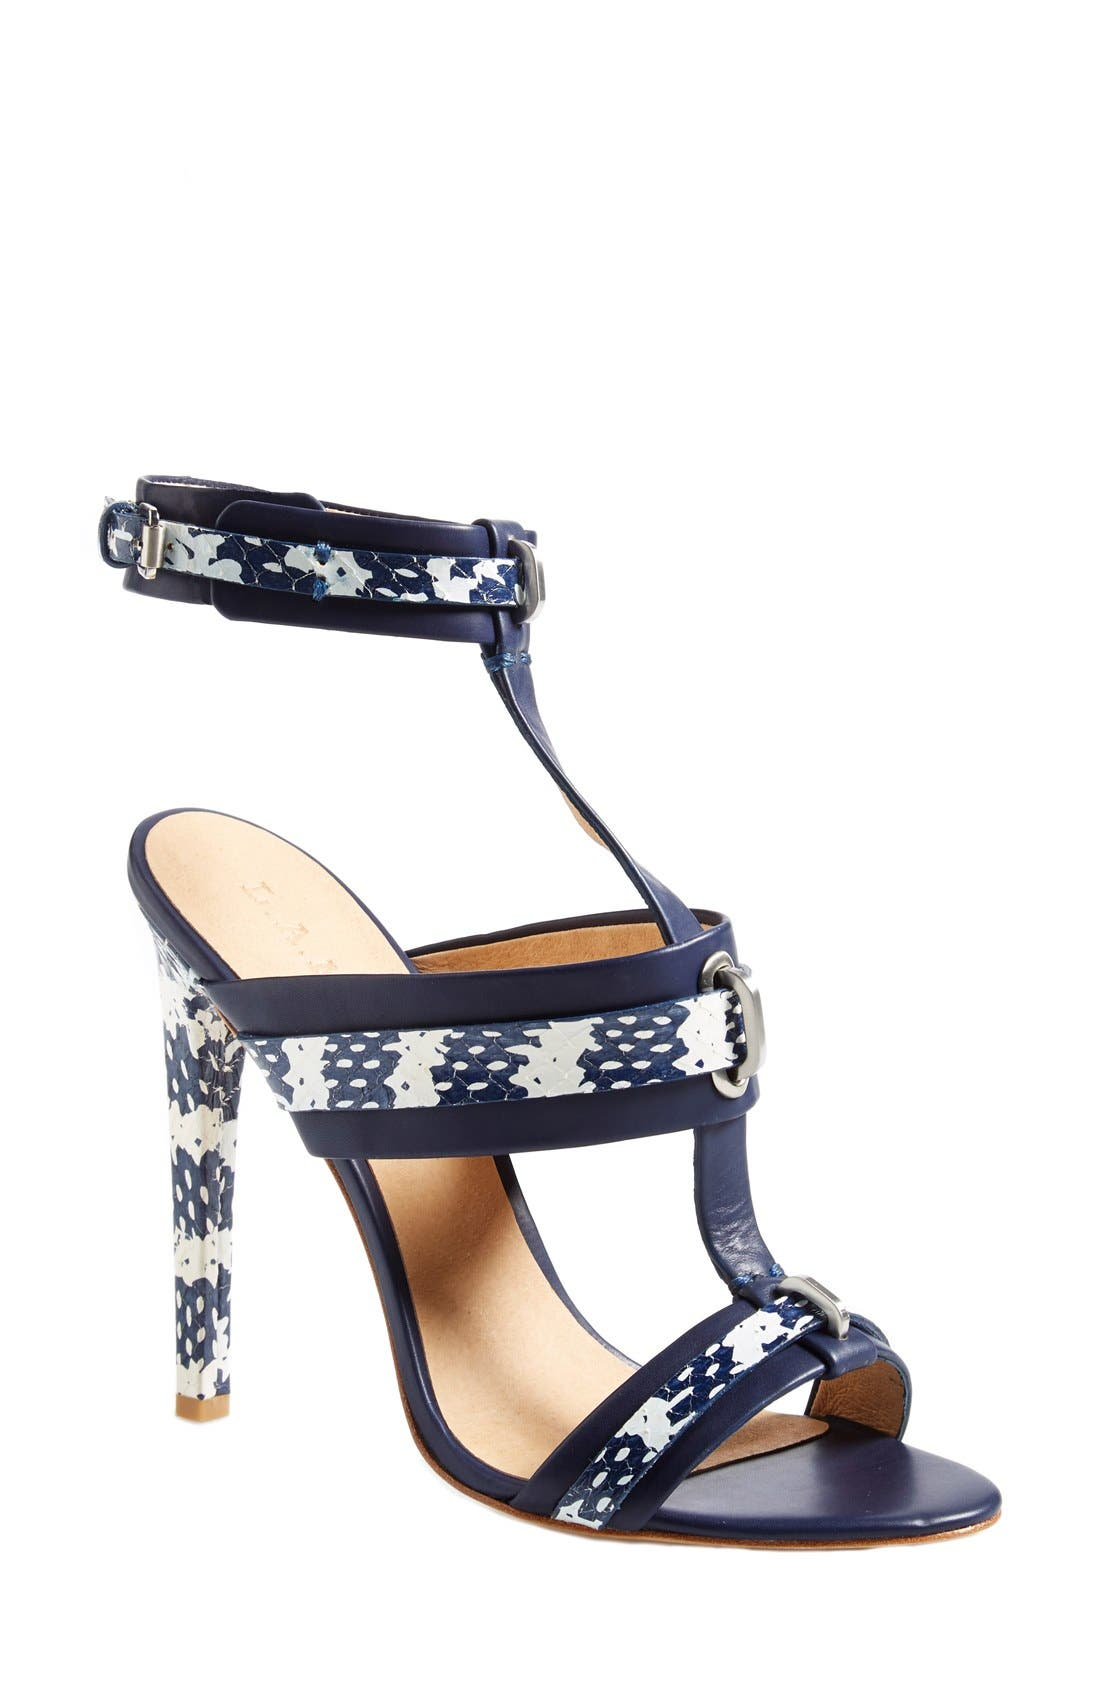 Alternate Image 1 Selected - L.A.M.B. 'Bradley' T-Strap Sandal (Women)